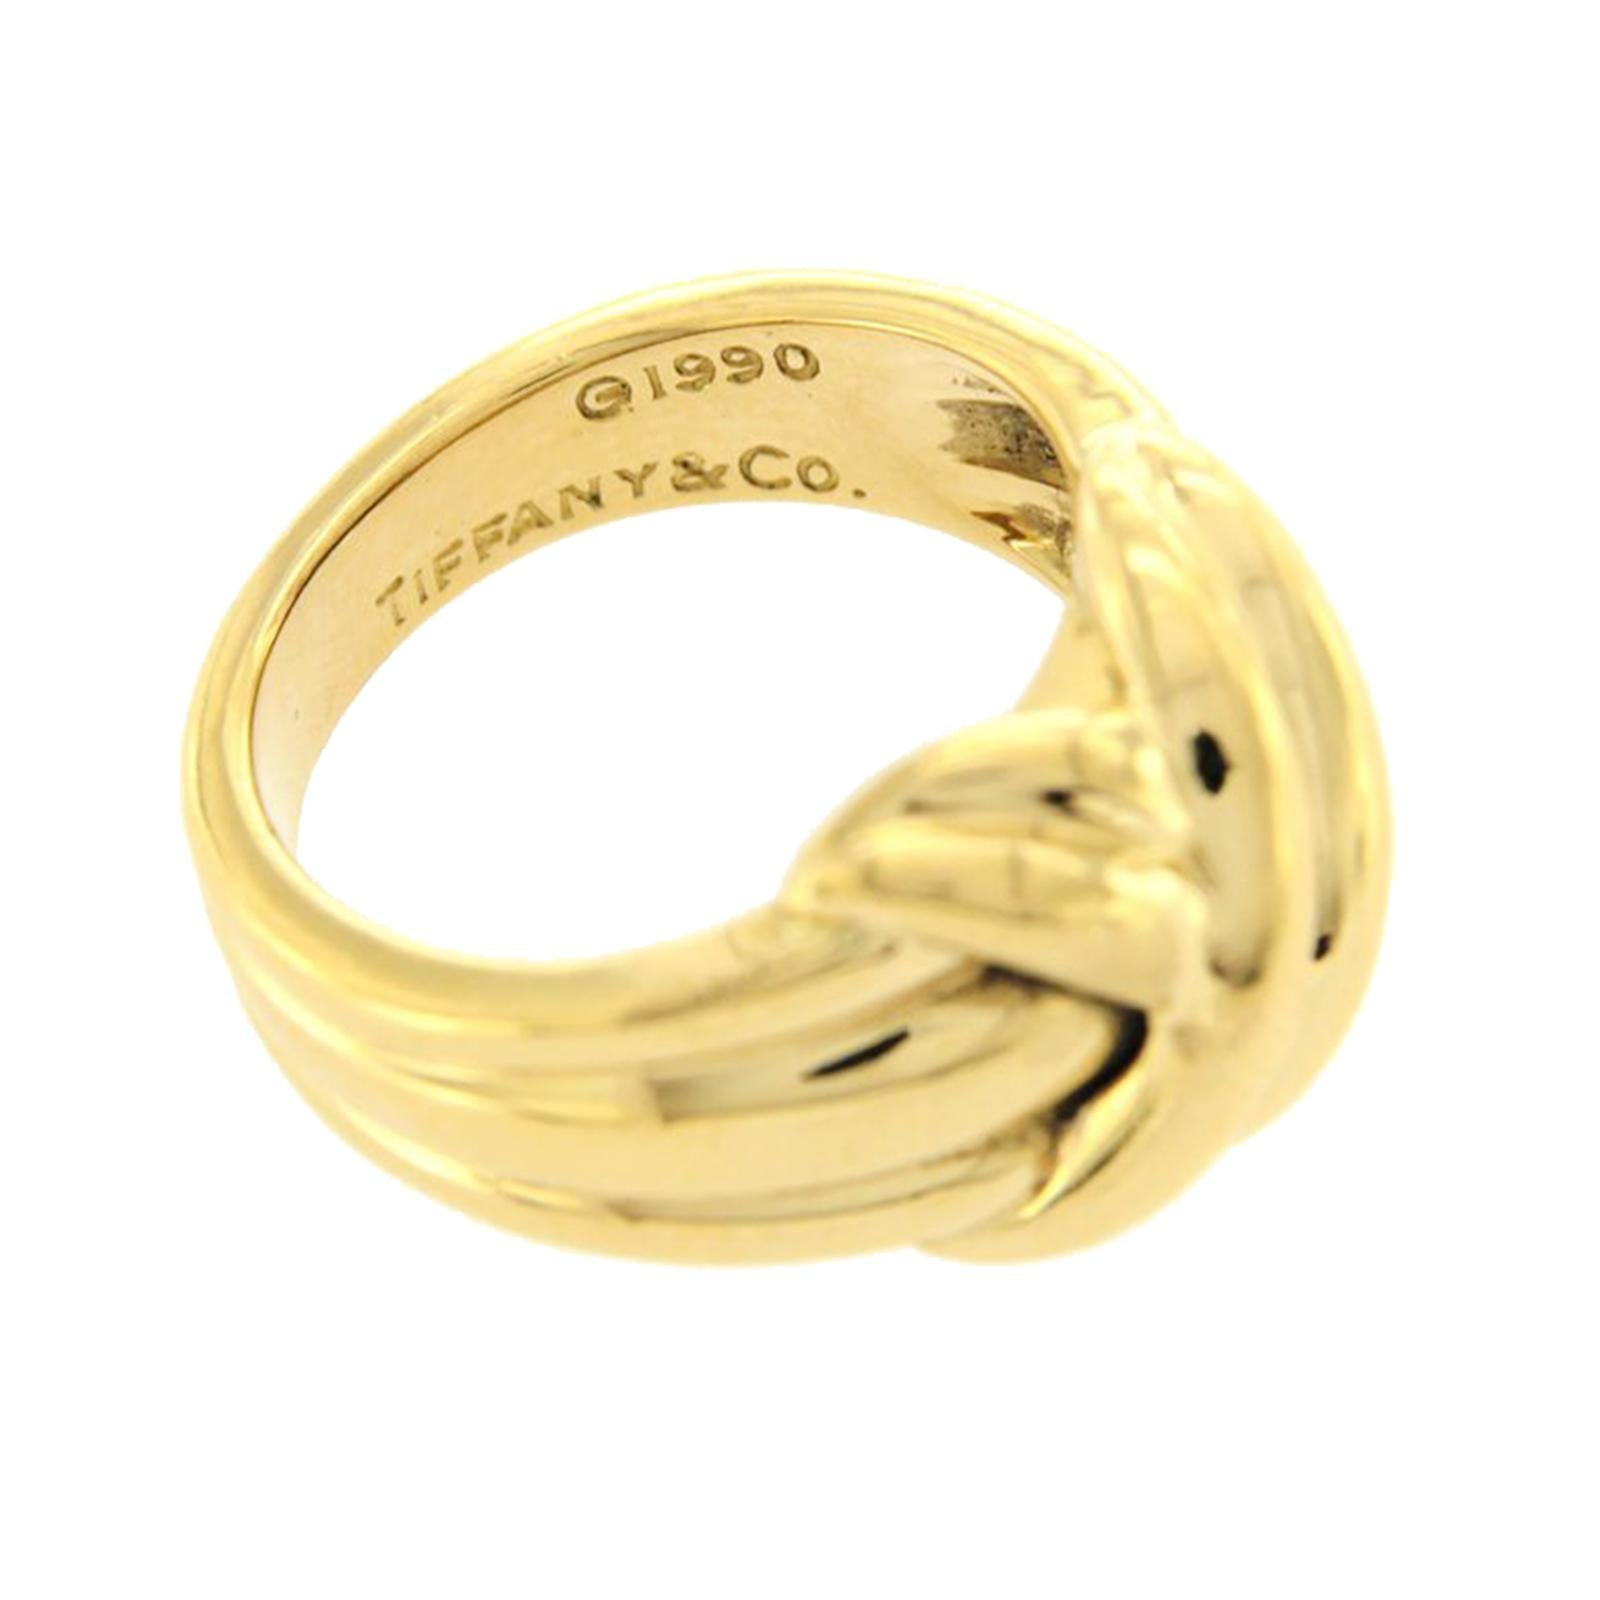 4e39f9dea2d2d Tiffany & Co. 18 Karat Yellow Gold Large Knot, 1990,